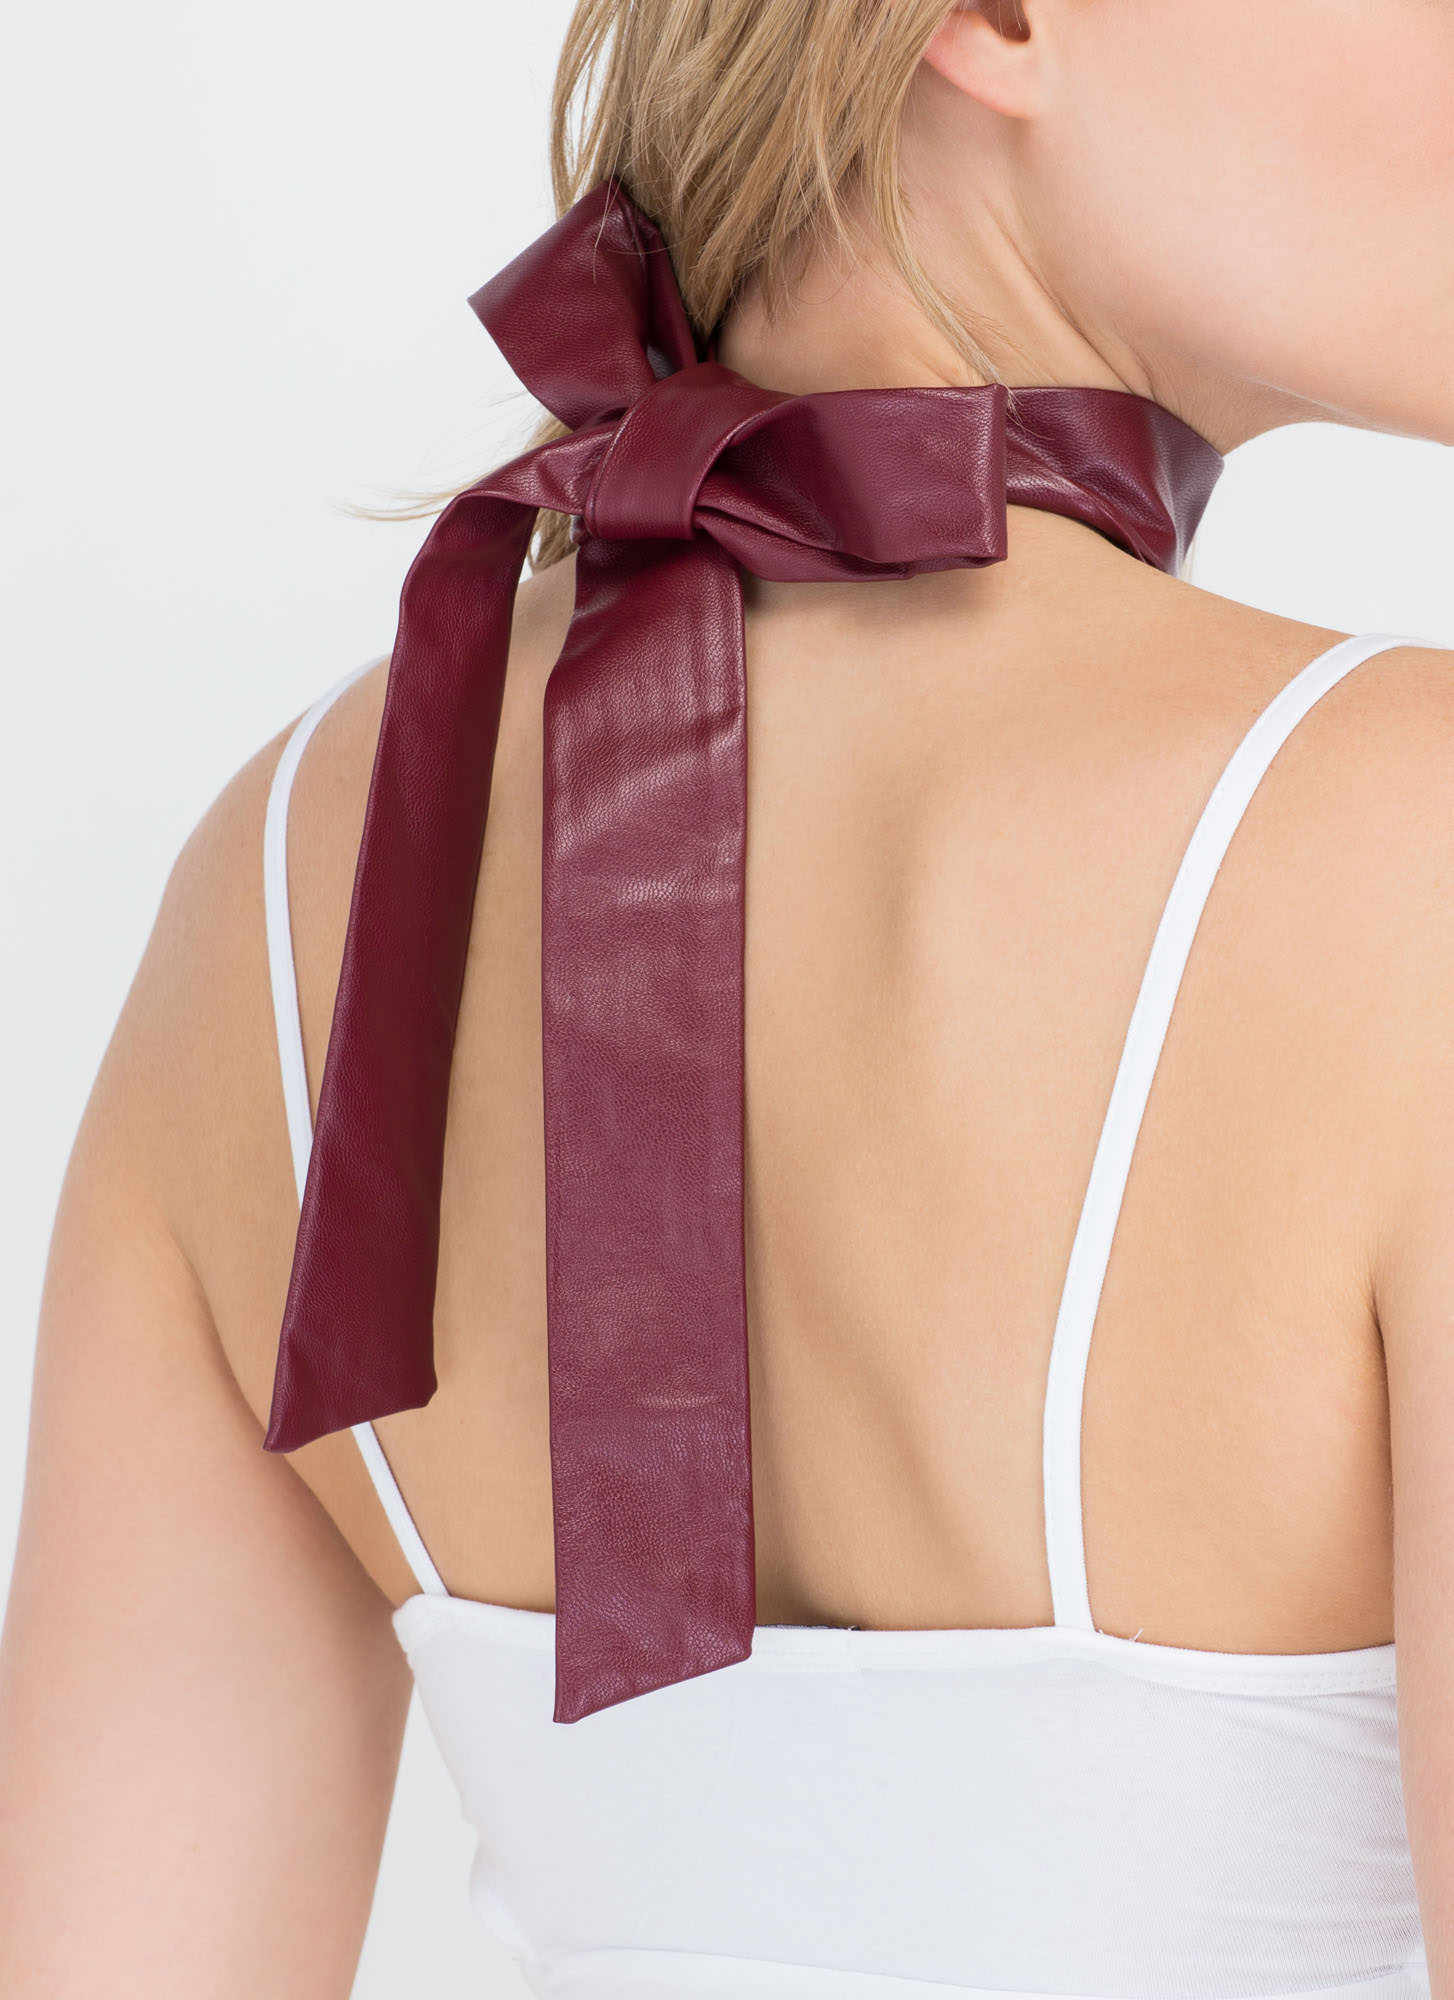 Multiple Choice Test Strappy Necklace BURGUNDY